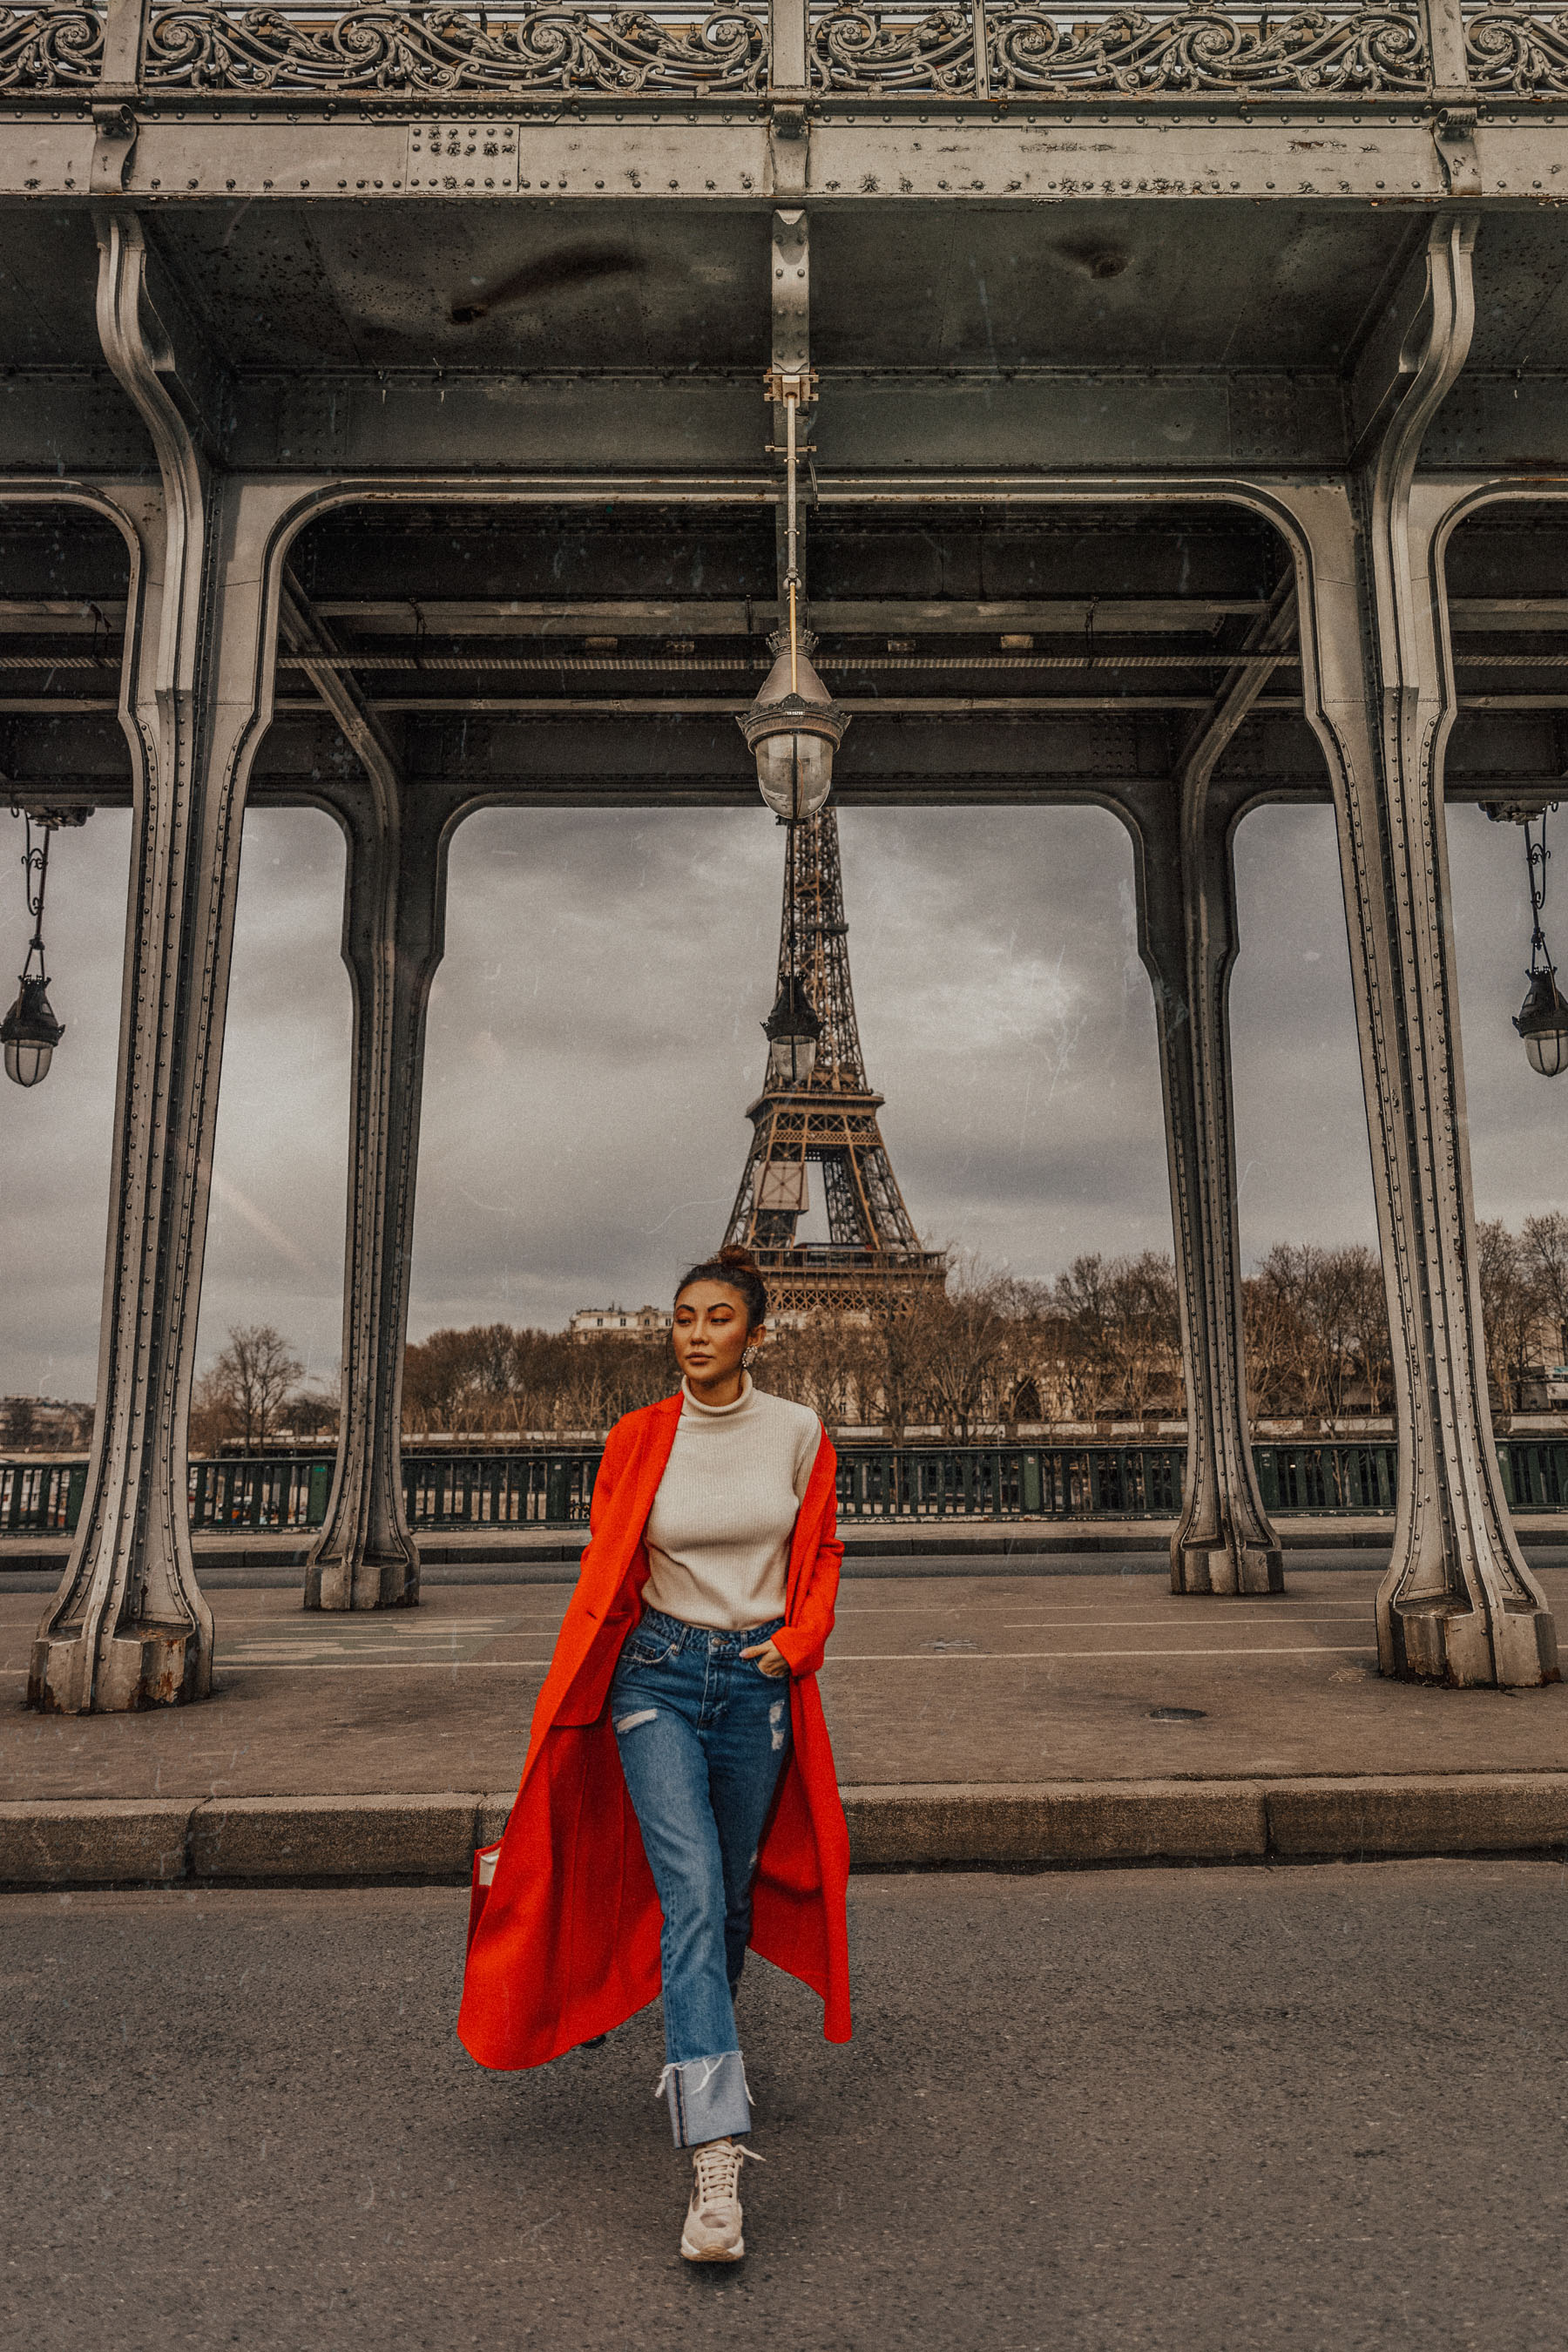 Winter Trends You Can Still Wear In Spring - Bright red coat, cuffed jeans, balenciaga bazar shopper, jessica wang in paris, pfw street style, chunky sneakers outfit, spring 2018 trends // Notjessfashion.com